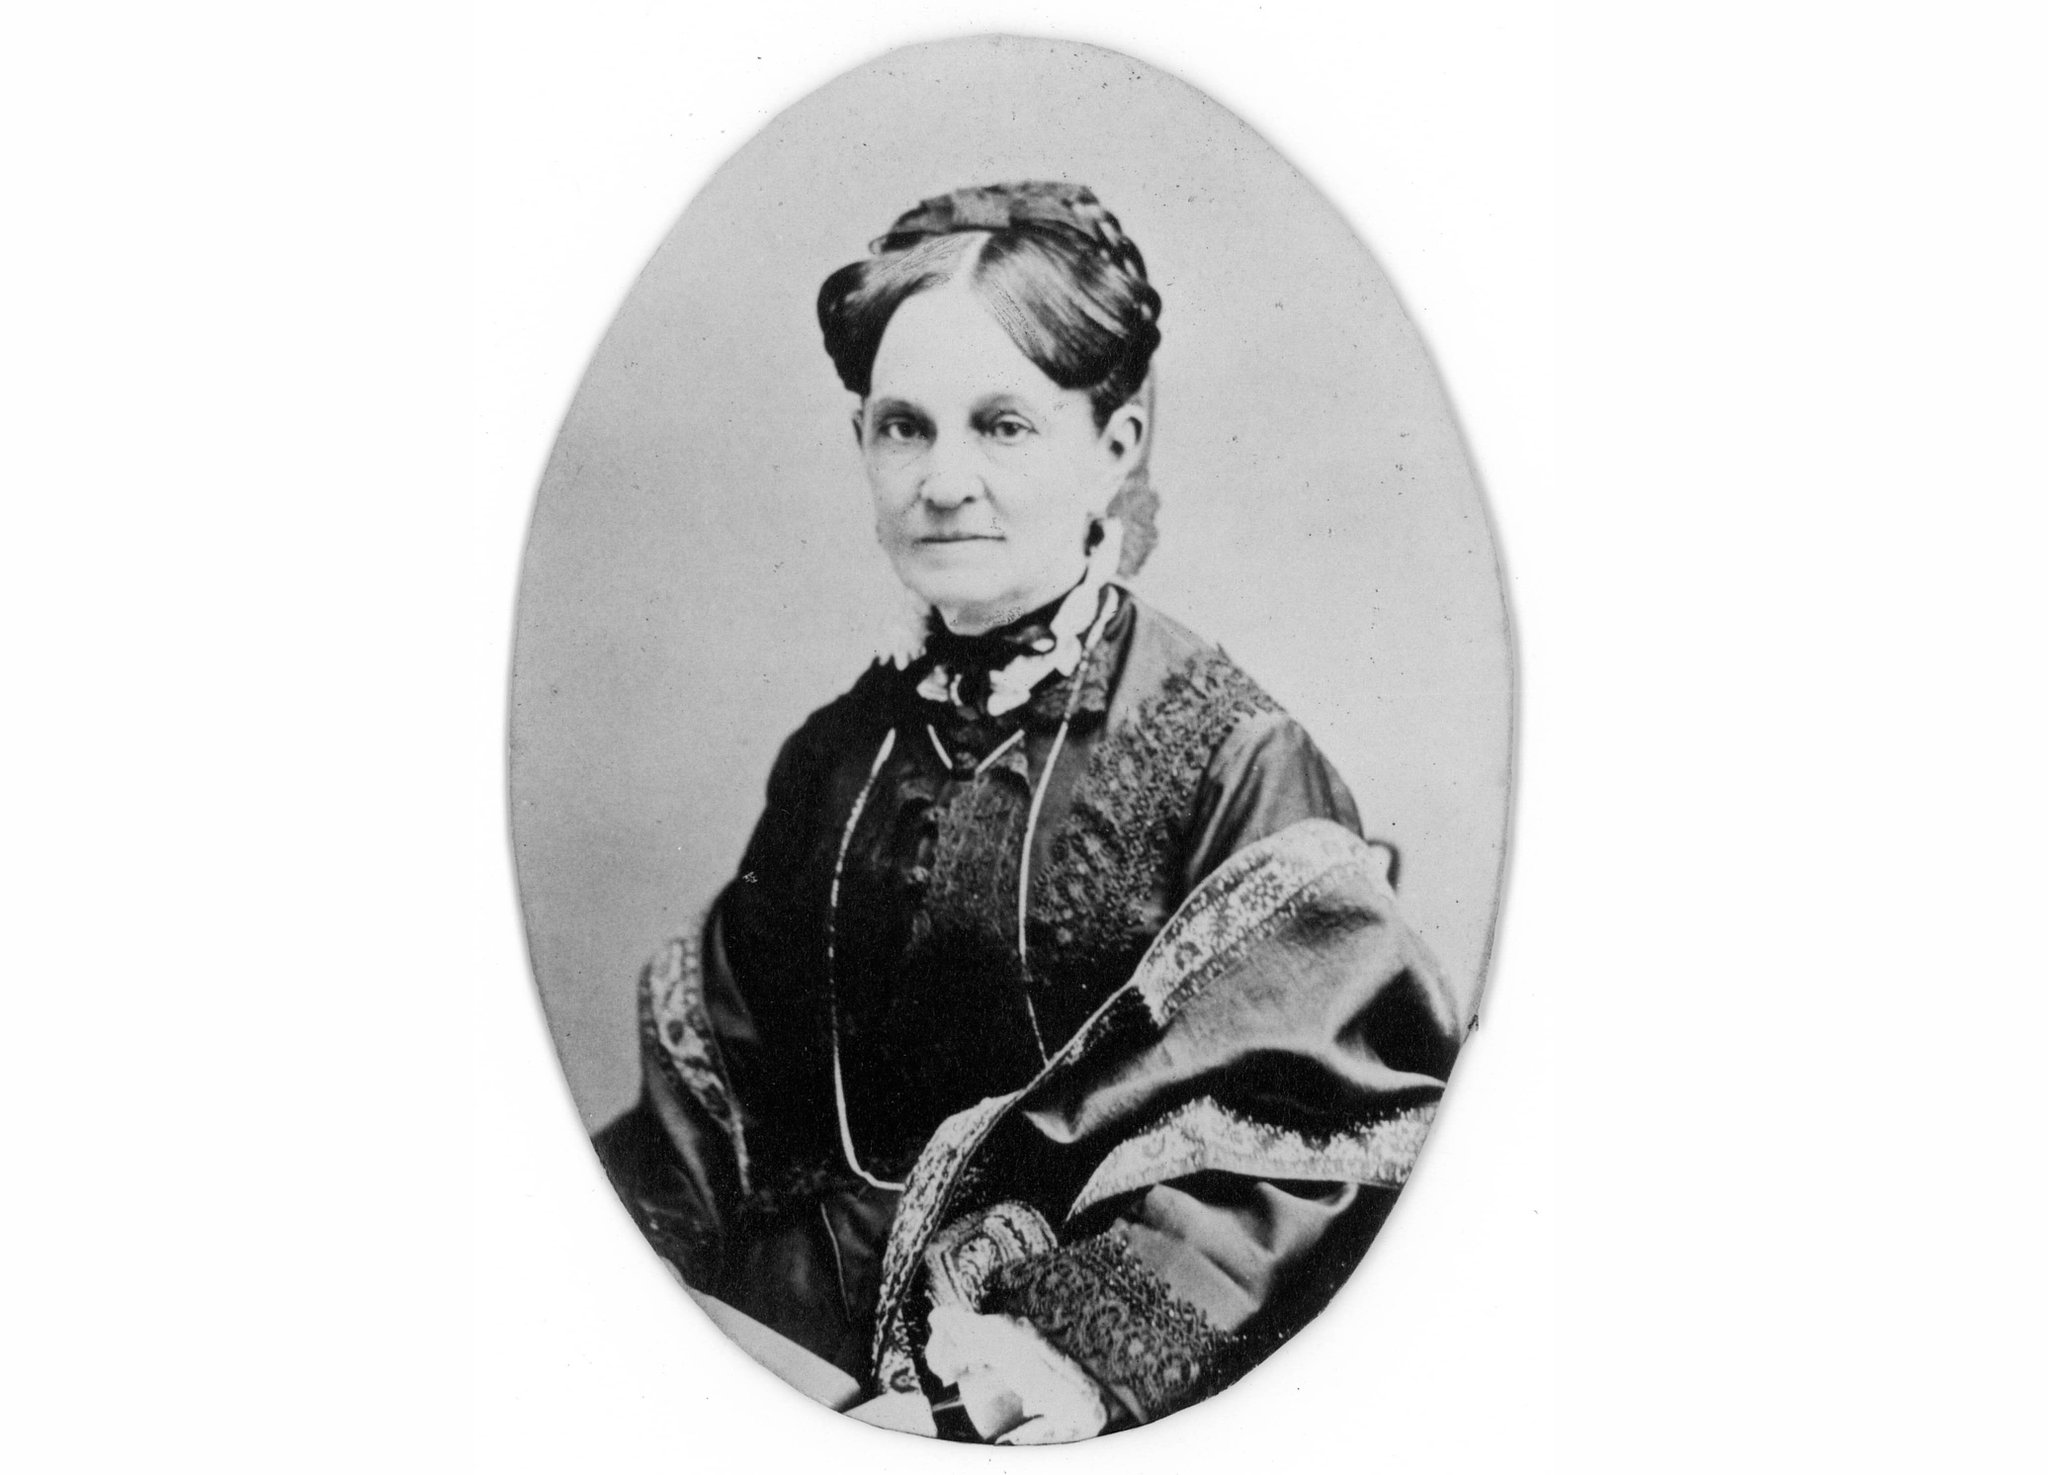 Elizabeth Emerson Atwater (1812-1878) was a noted naturalist & collector who willed her collection to us #DayofFacts https://t.co/uOPUdRgiH2